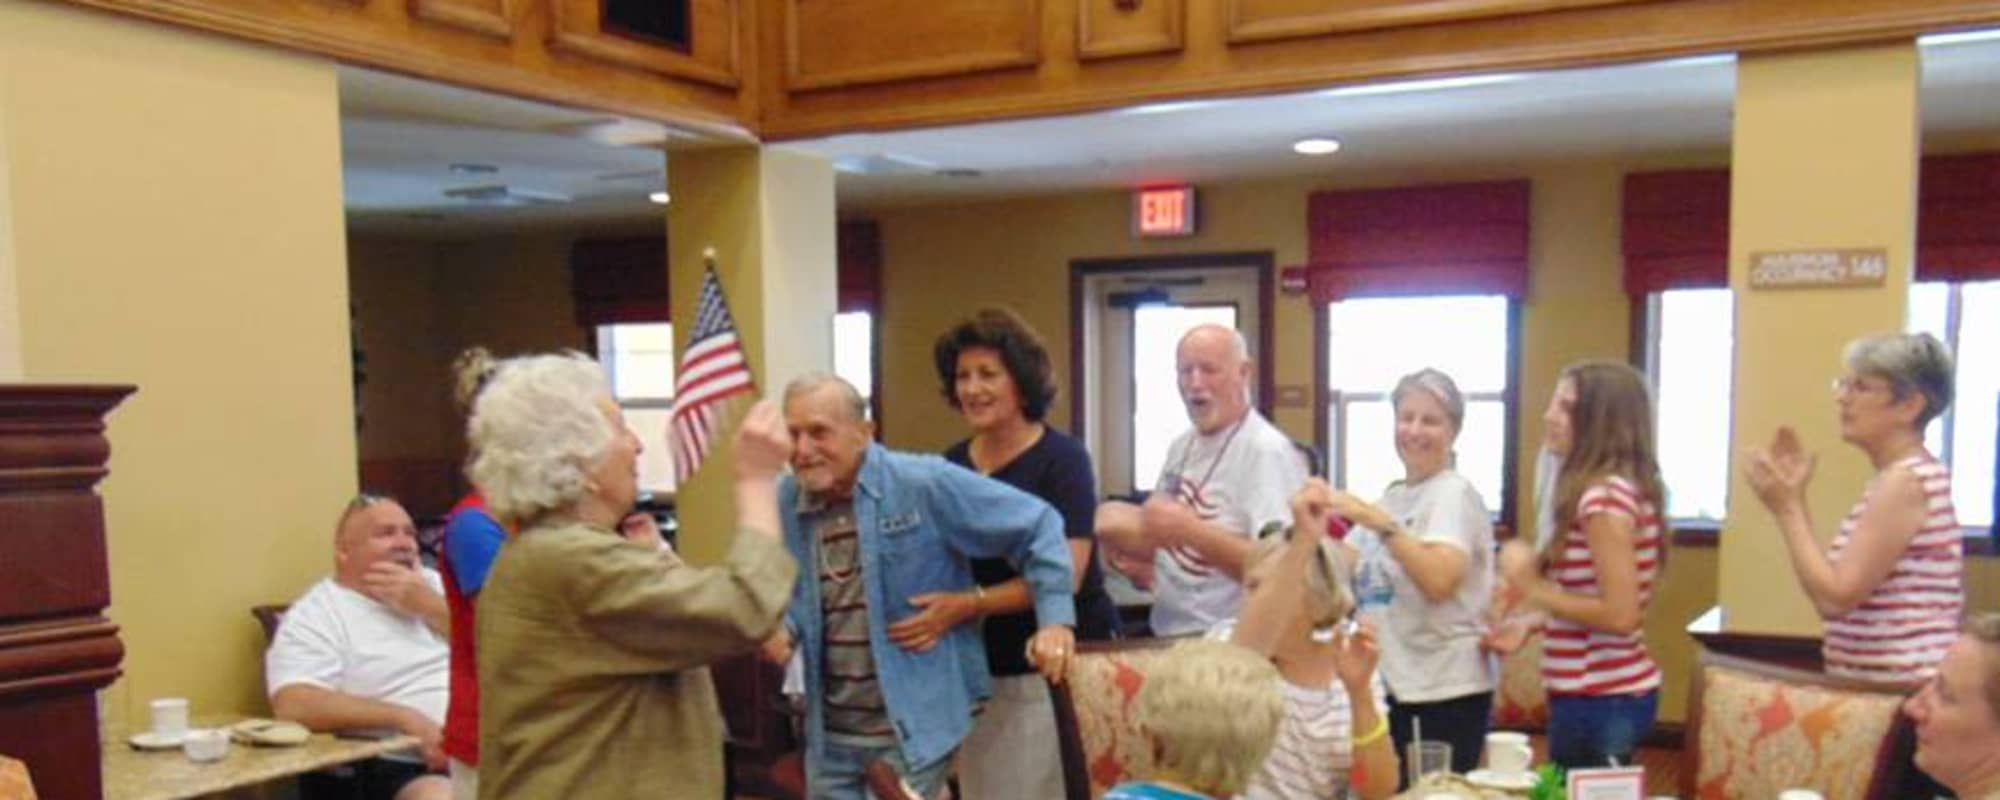 Seniors dancing at Estancia Del Sol in Corona, California